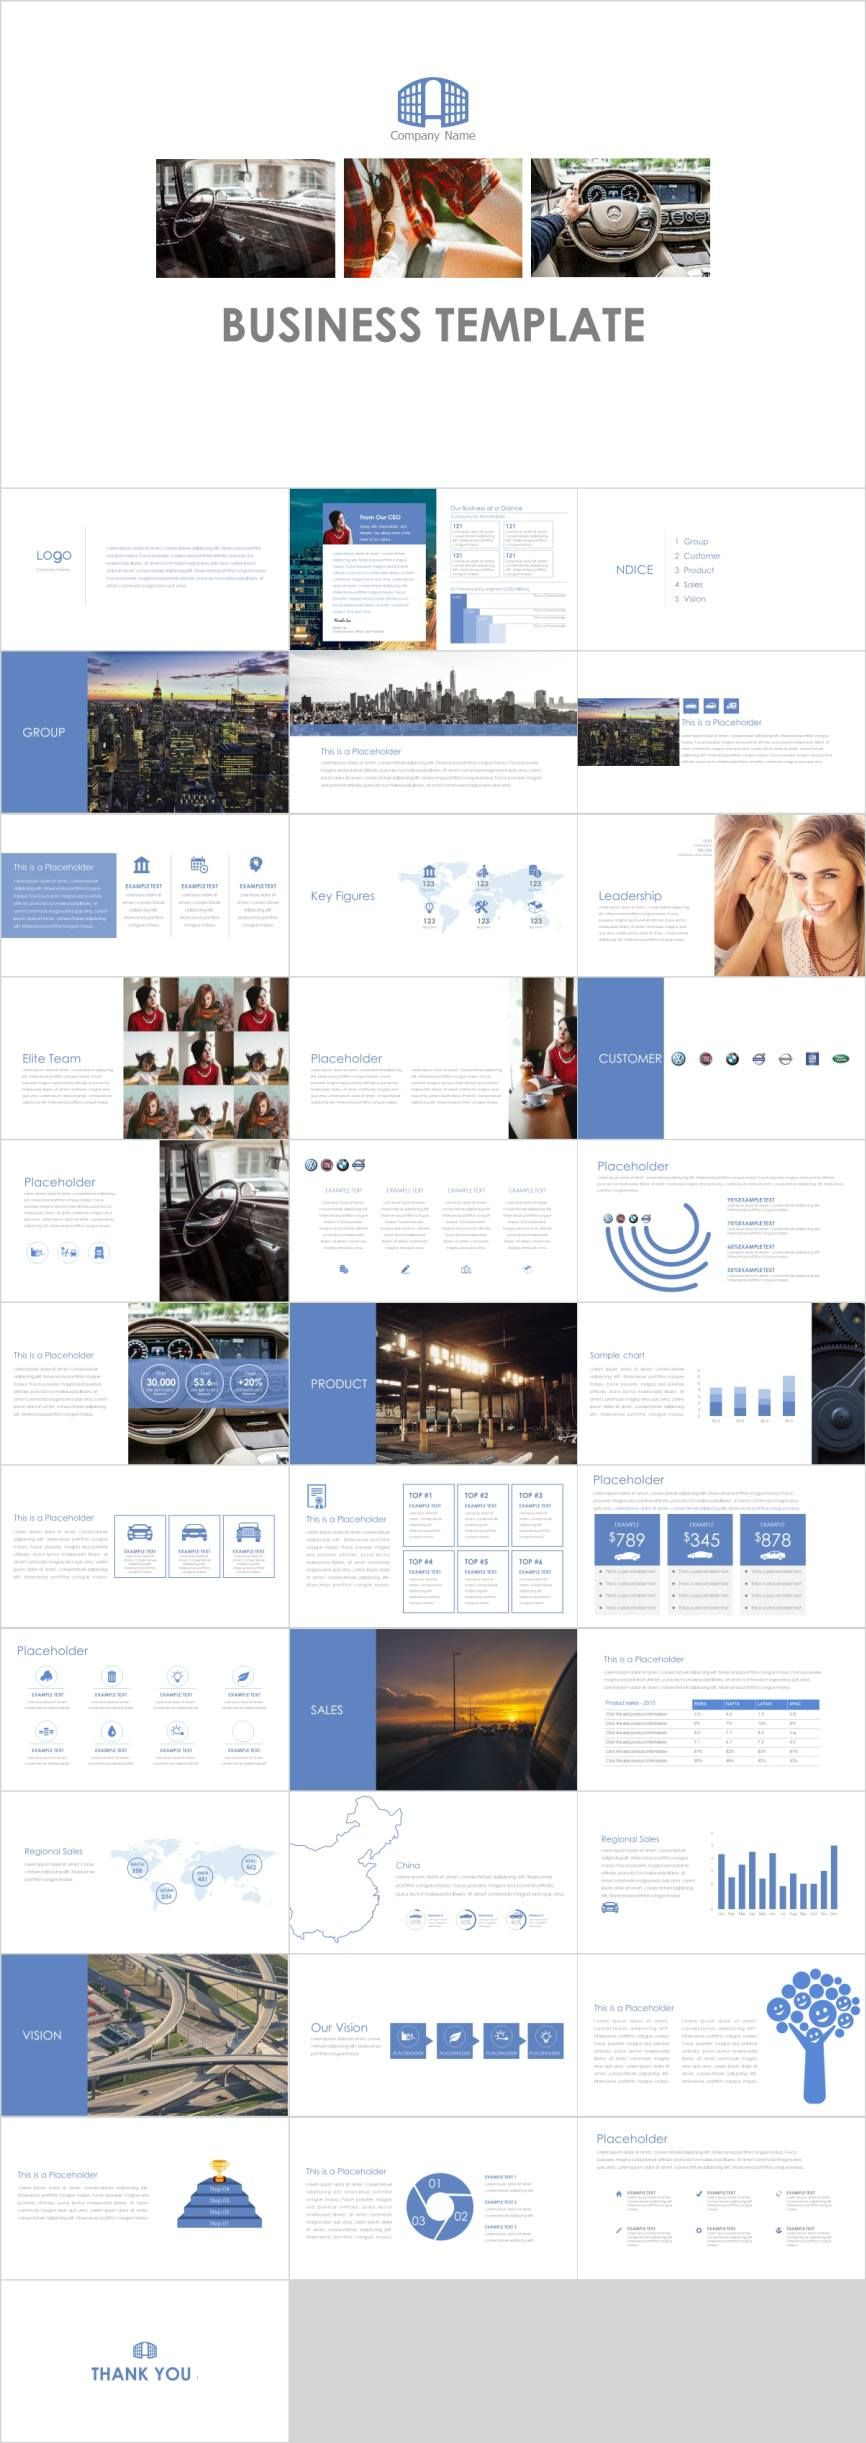 Blue business report design PowerPoint template